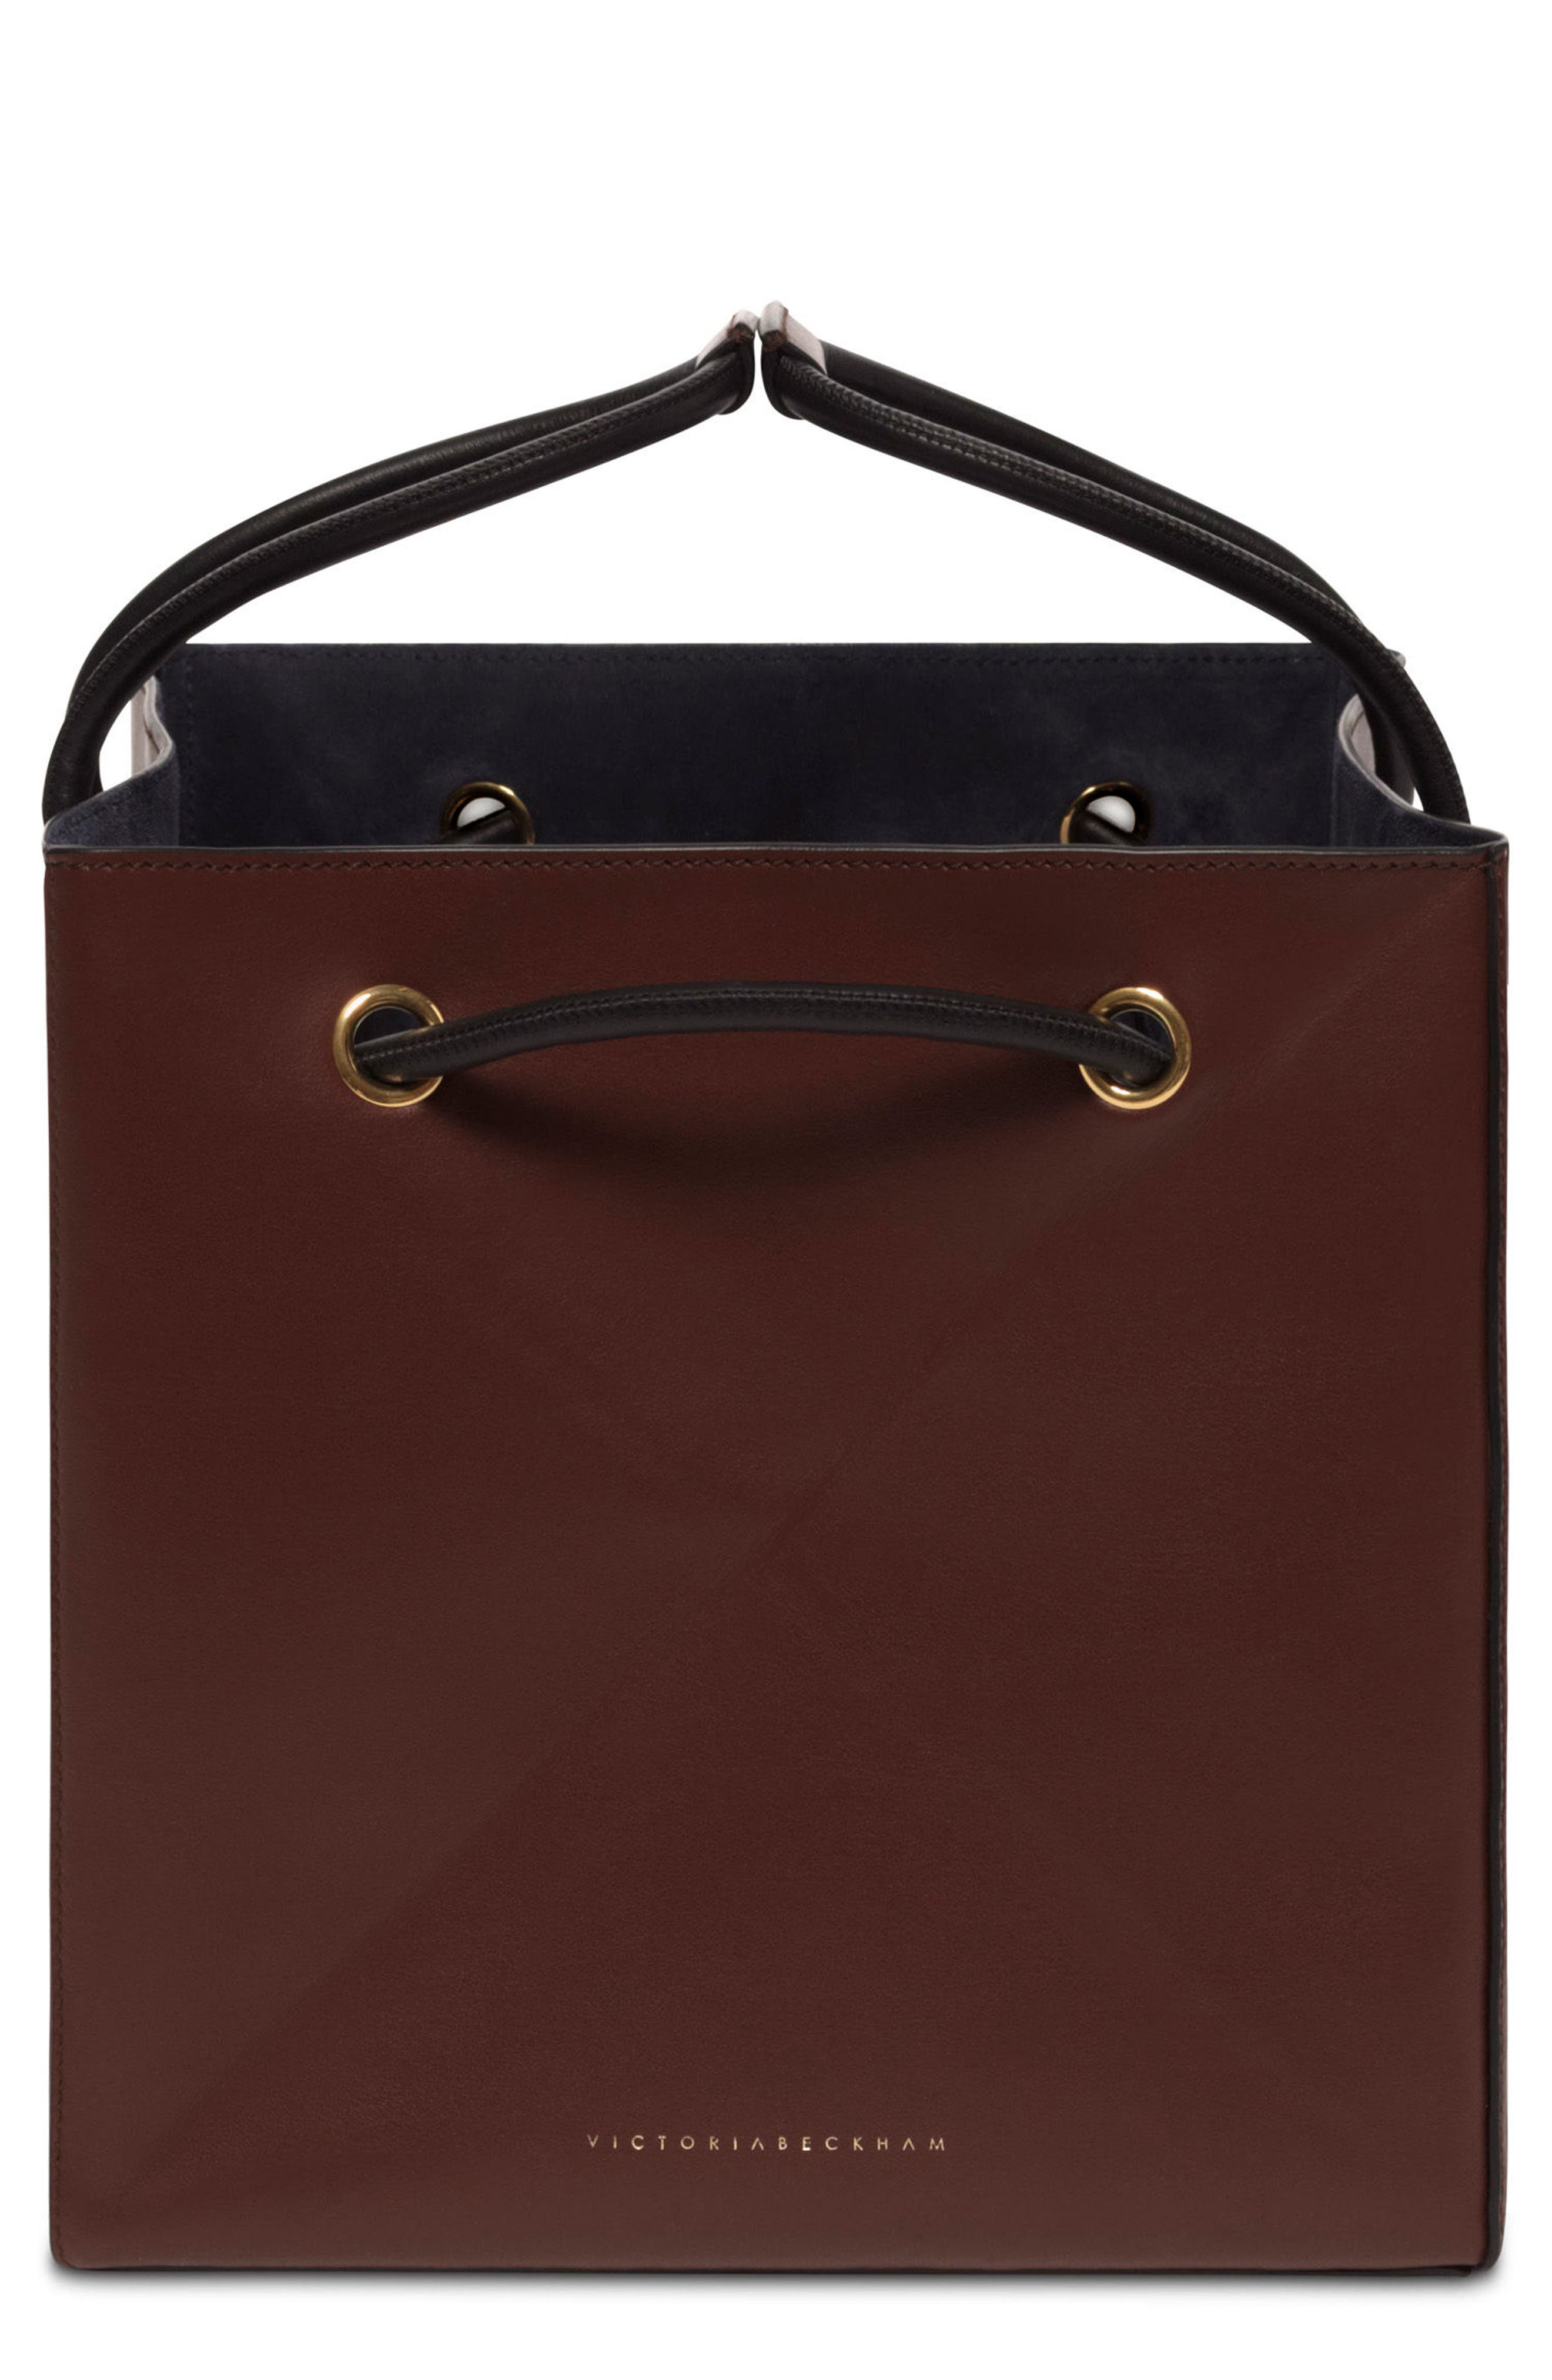 Alternate Image 1 Selected - Victoria Beckham Small Cube Bag